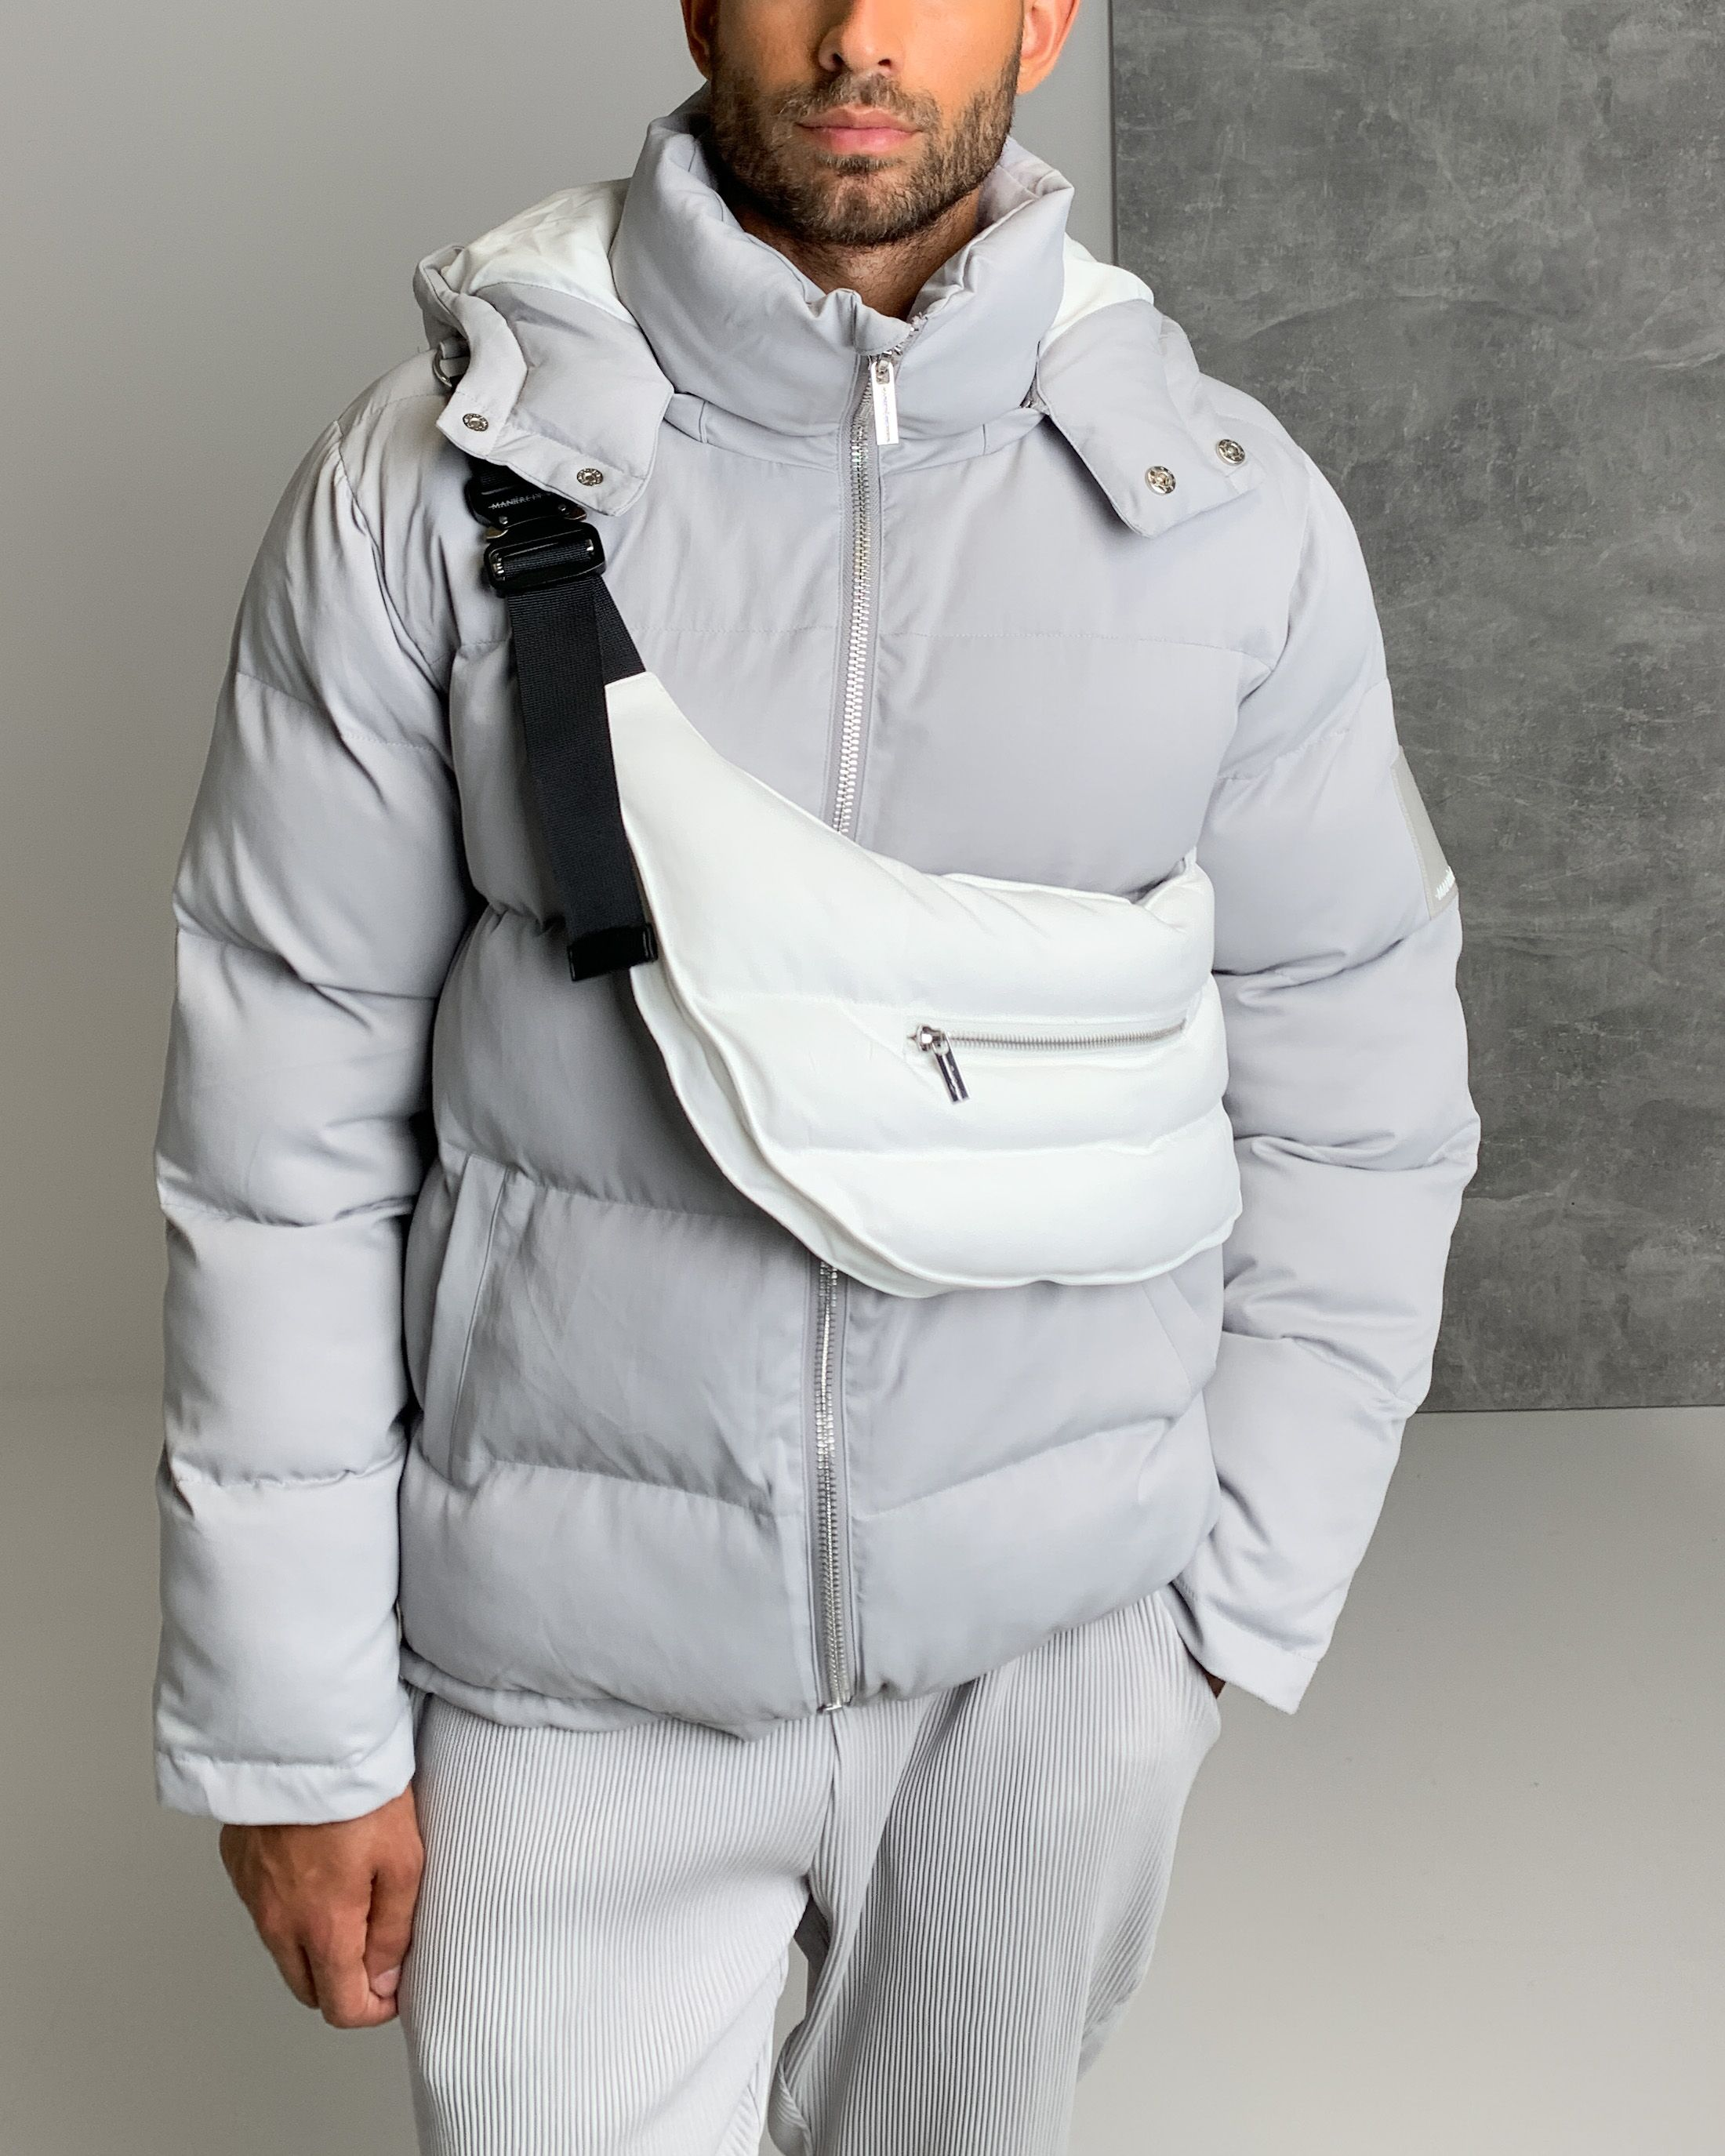 Puffer Jacket With Detachable Bag Ice Grey White In 2021 Mens Puffer Jacket Puffer Jacket Outfit Puffer Jacket Outfit Men [ 2750 x 2200 Pixel ]